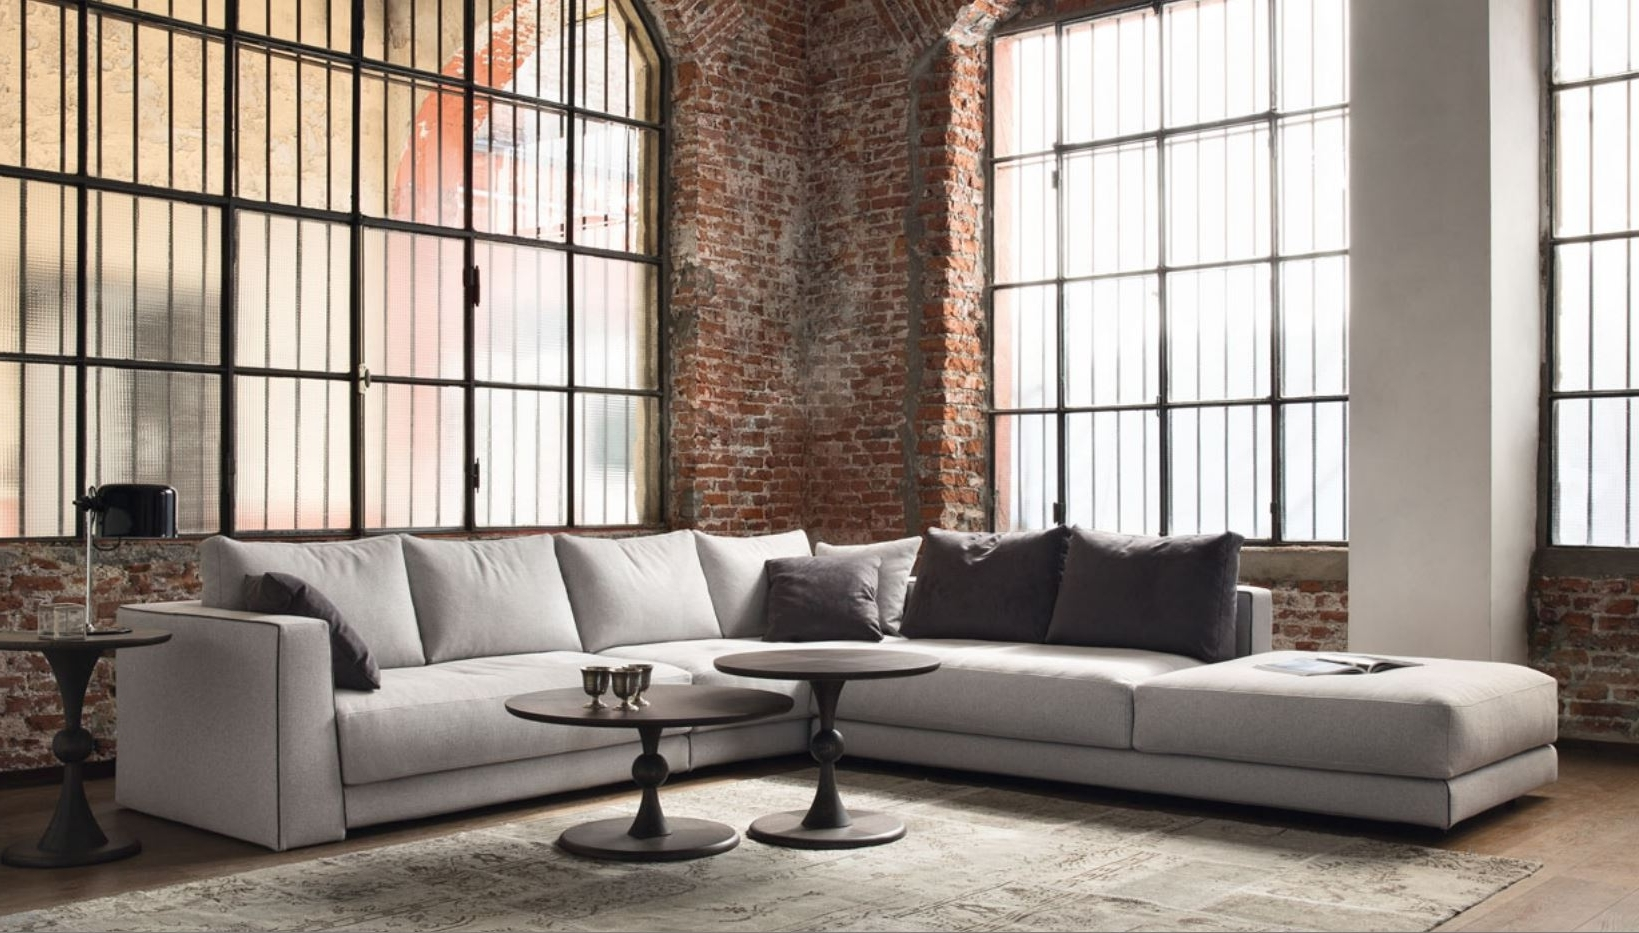 2018 Sectional Sofas At Brick For Contemporary Sectional Couch Best Modern Sectional Sofa Grey (View 18 of 20)